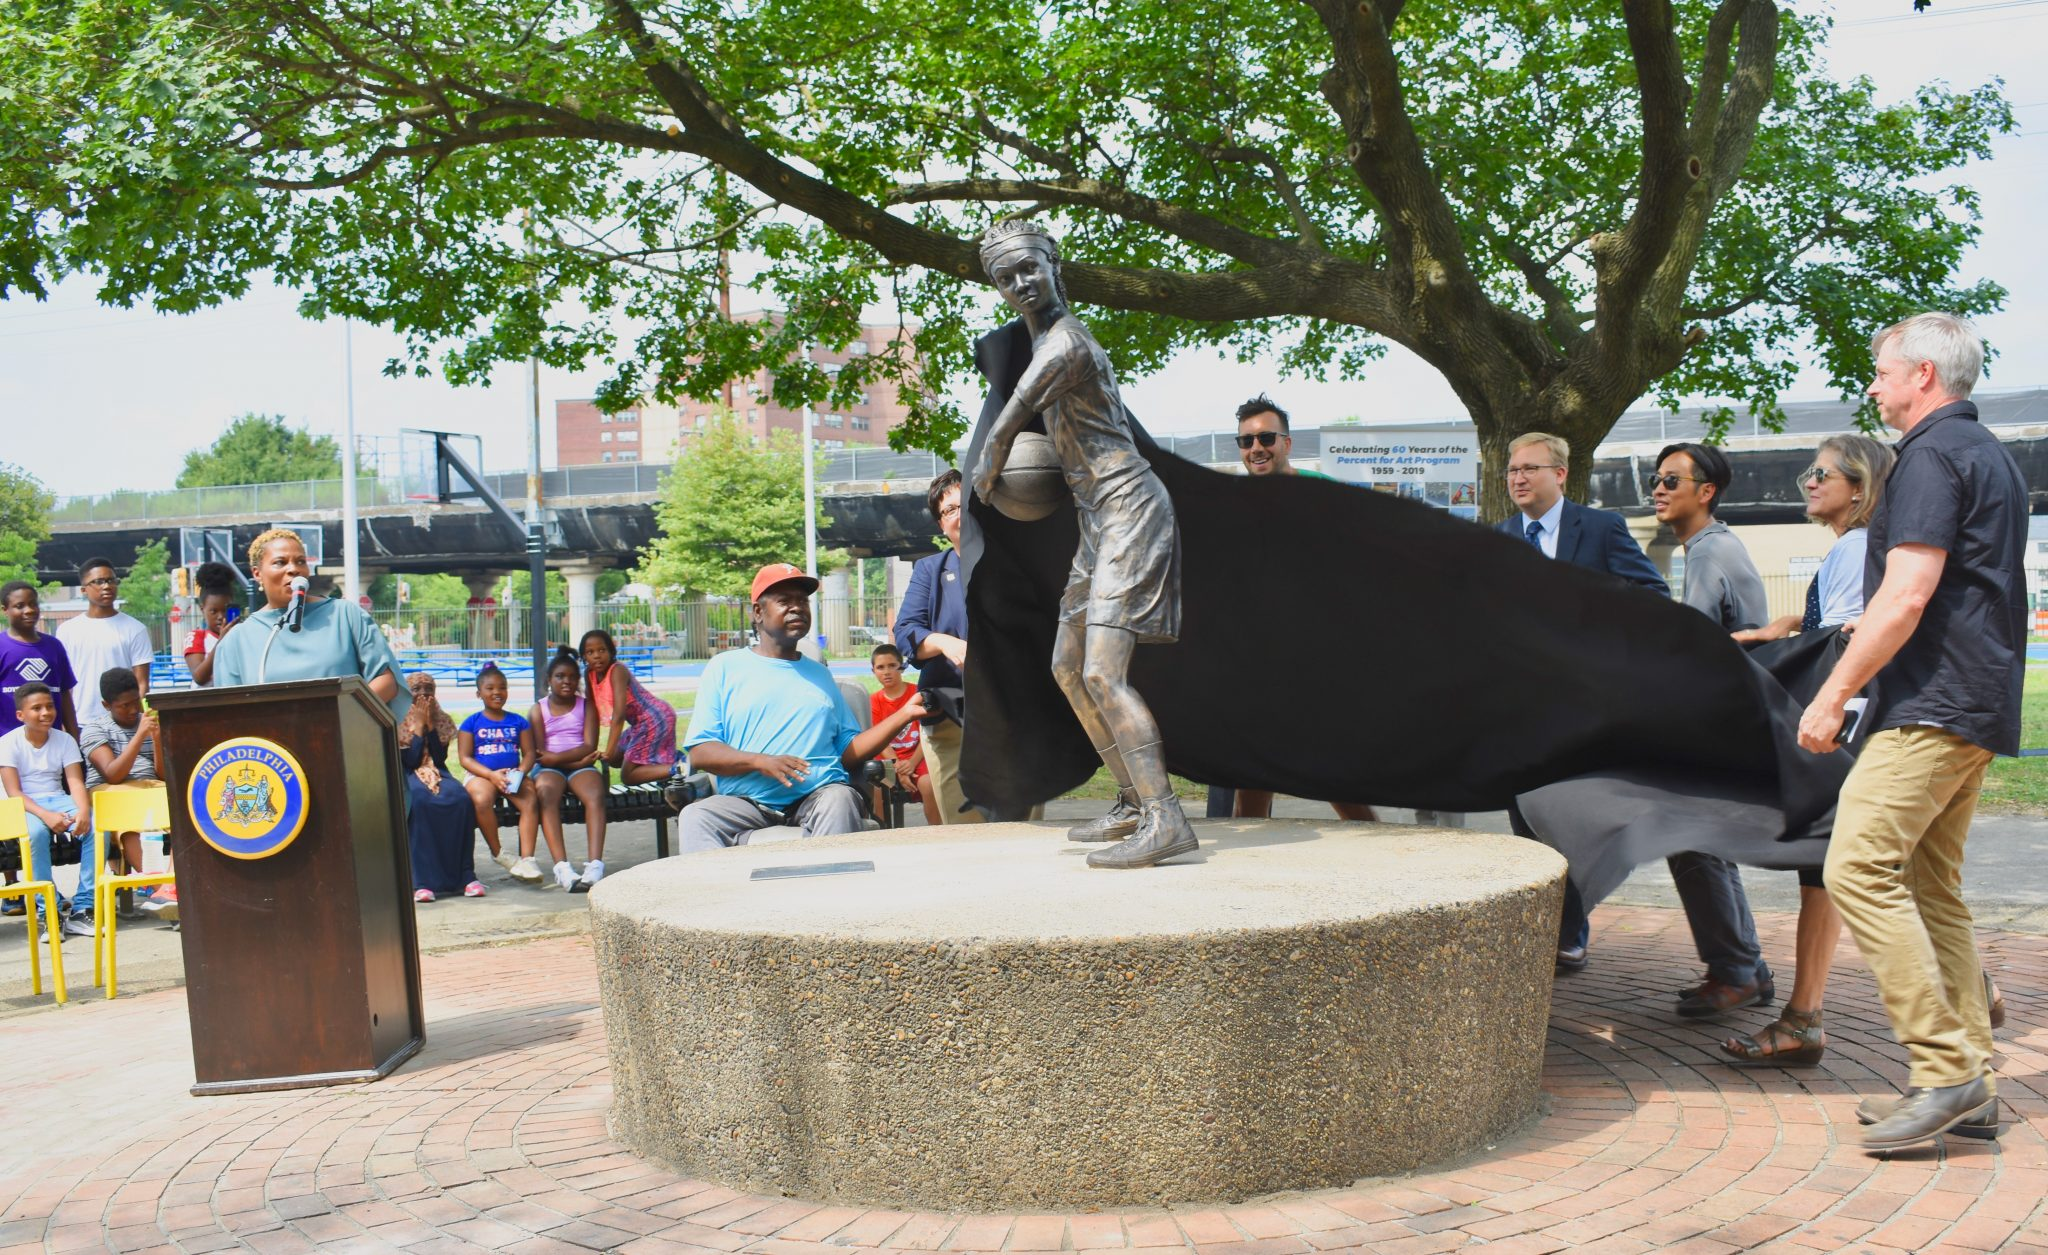 First public art portraying an individual African-American girl